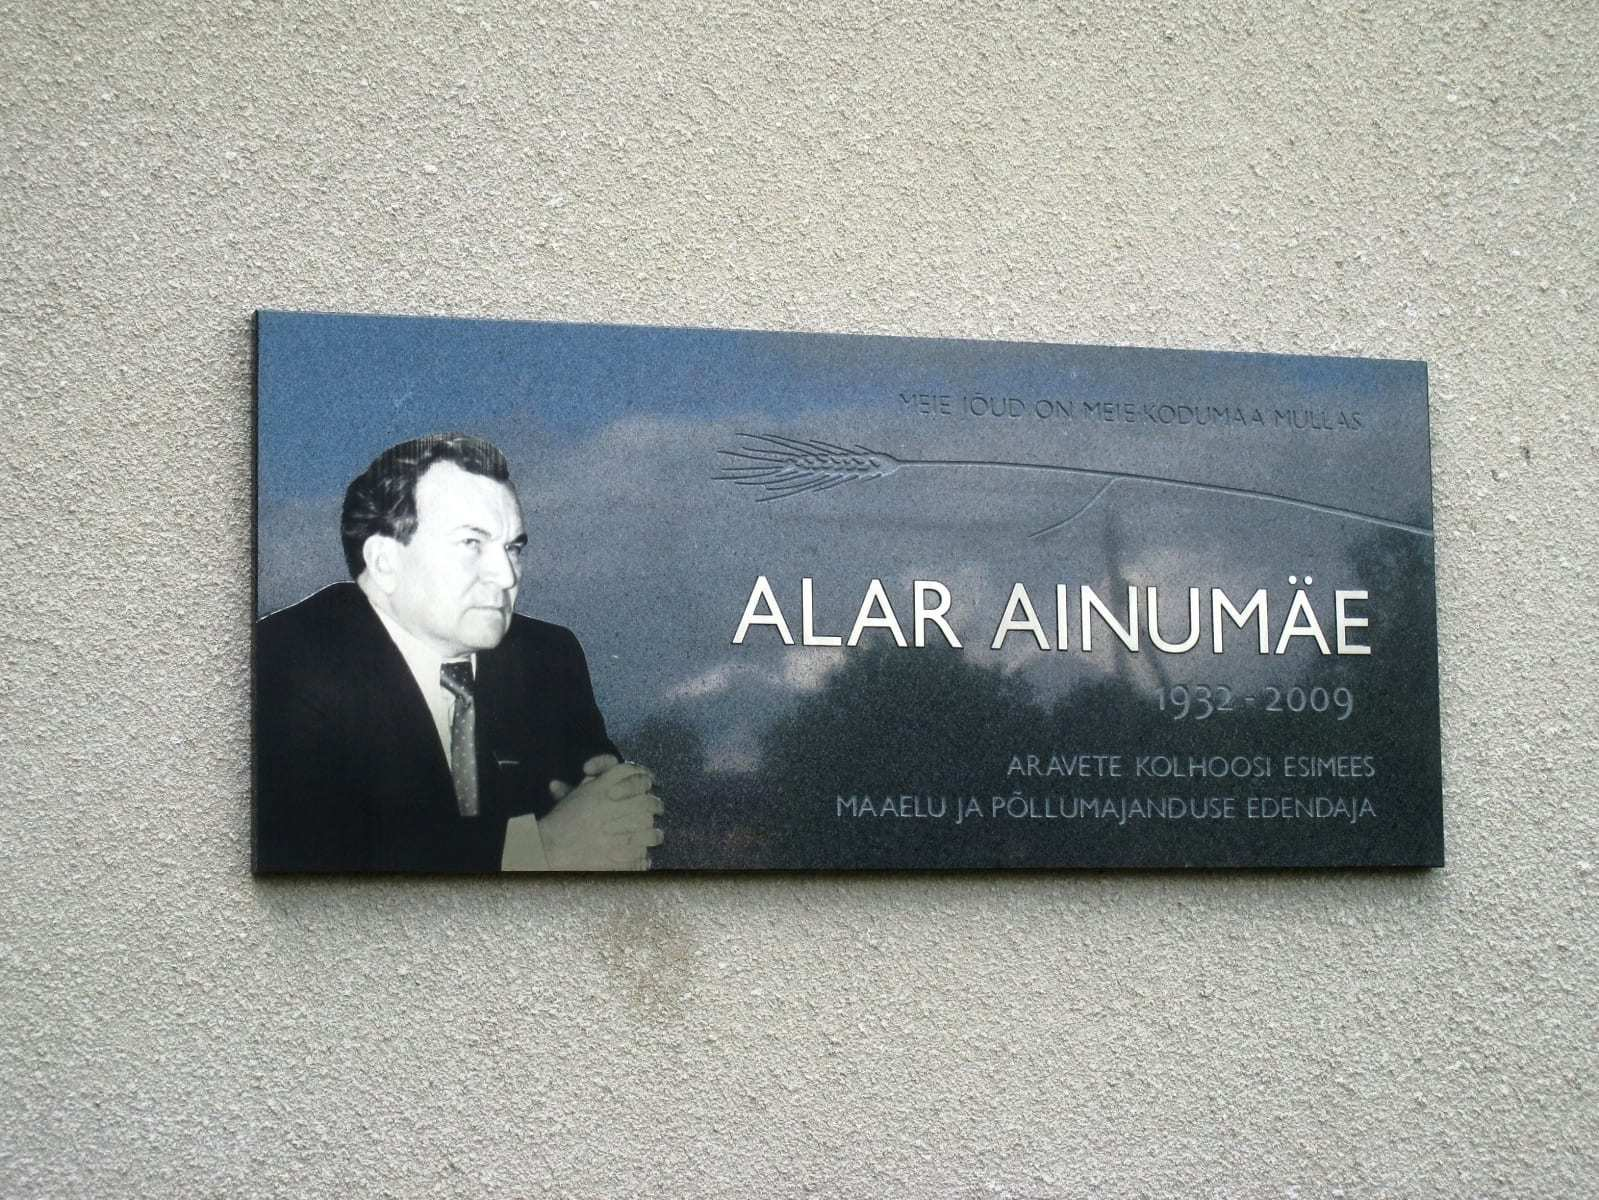 ALAR AINUMÄE MÄLESTUSTAHVEL 2015 graniit, lasergraveering roostevabal terasel 140 x 60 cm - Aravete, Eesti  <br/>A memorial tablet to ALAR AINUMÄE 2015 granite, lazer engraving on stainless steel 140 x 60 cm - Aravete, Estonia